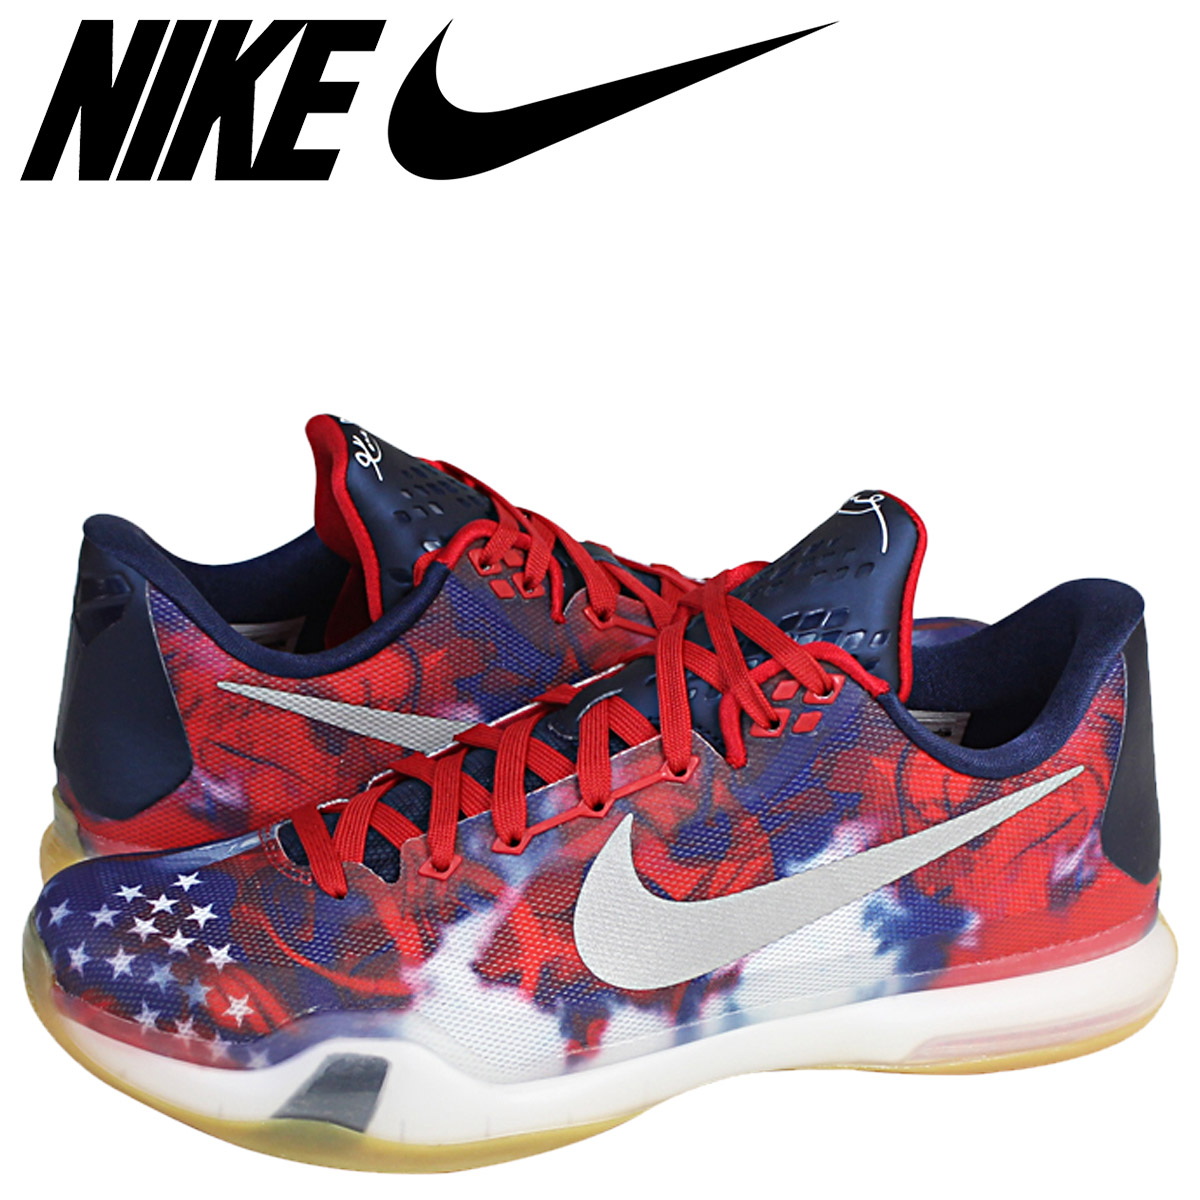 check out 76fab 424e2 Nike NIKE Corby sneakers KOBE X USA INDEPENDENCE DAY independence D  705,317-604 blue men